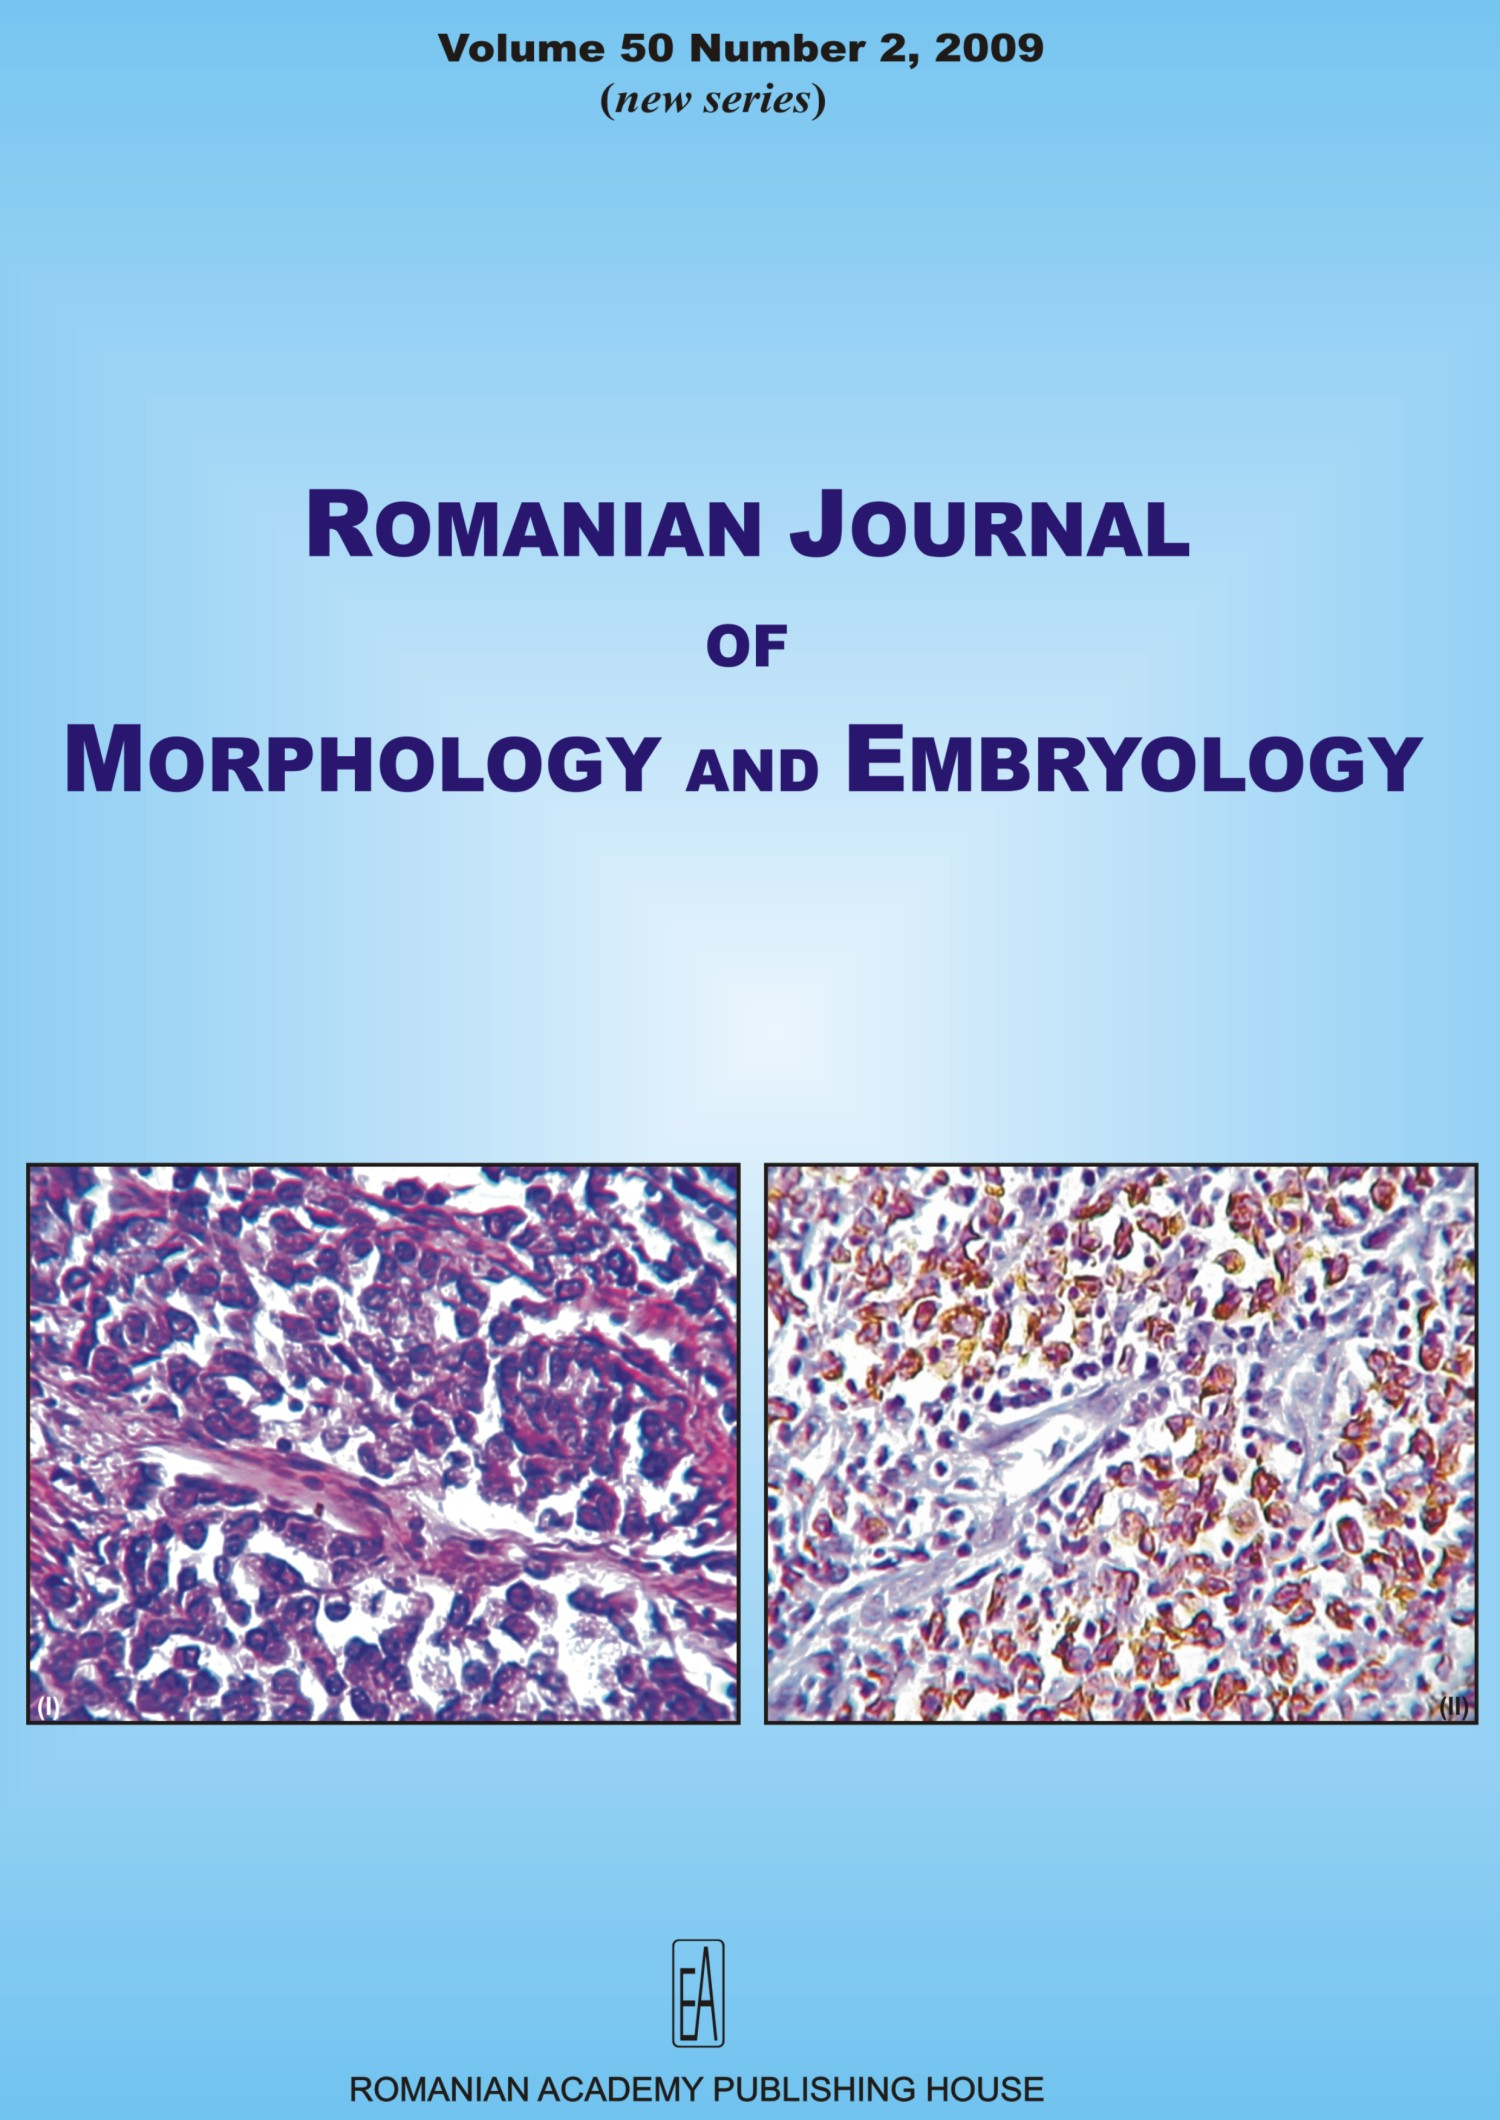 Romanian Journal of Morphology and Embryology, vol. 50 no. 2, 2009